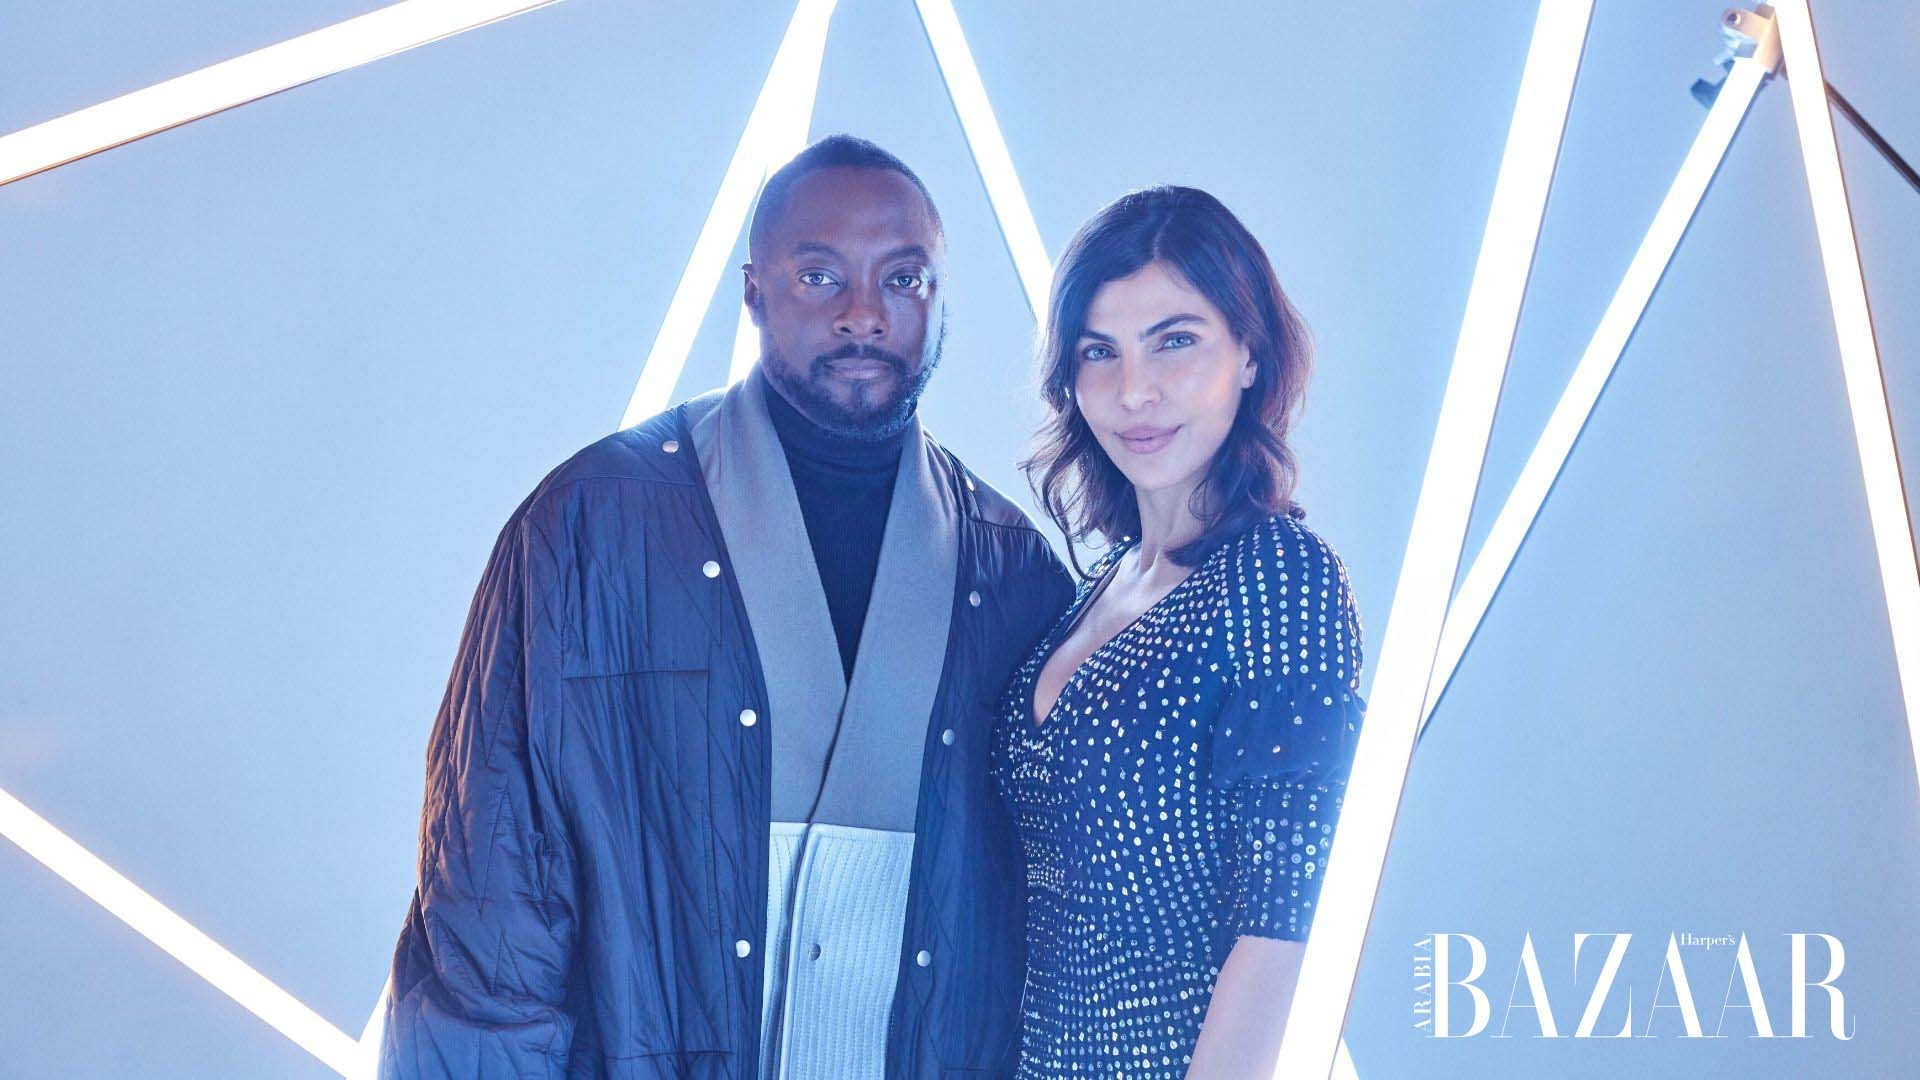 Editor-In-Chief Salma Awwad: Why BAZAAR's November 2019 Issue Is The Most Important To Date